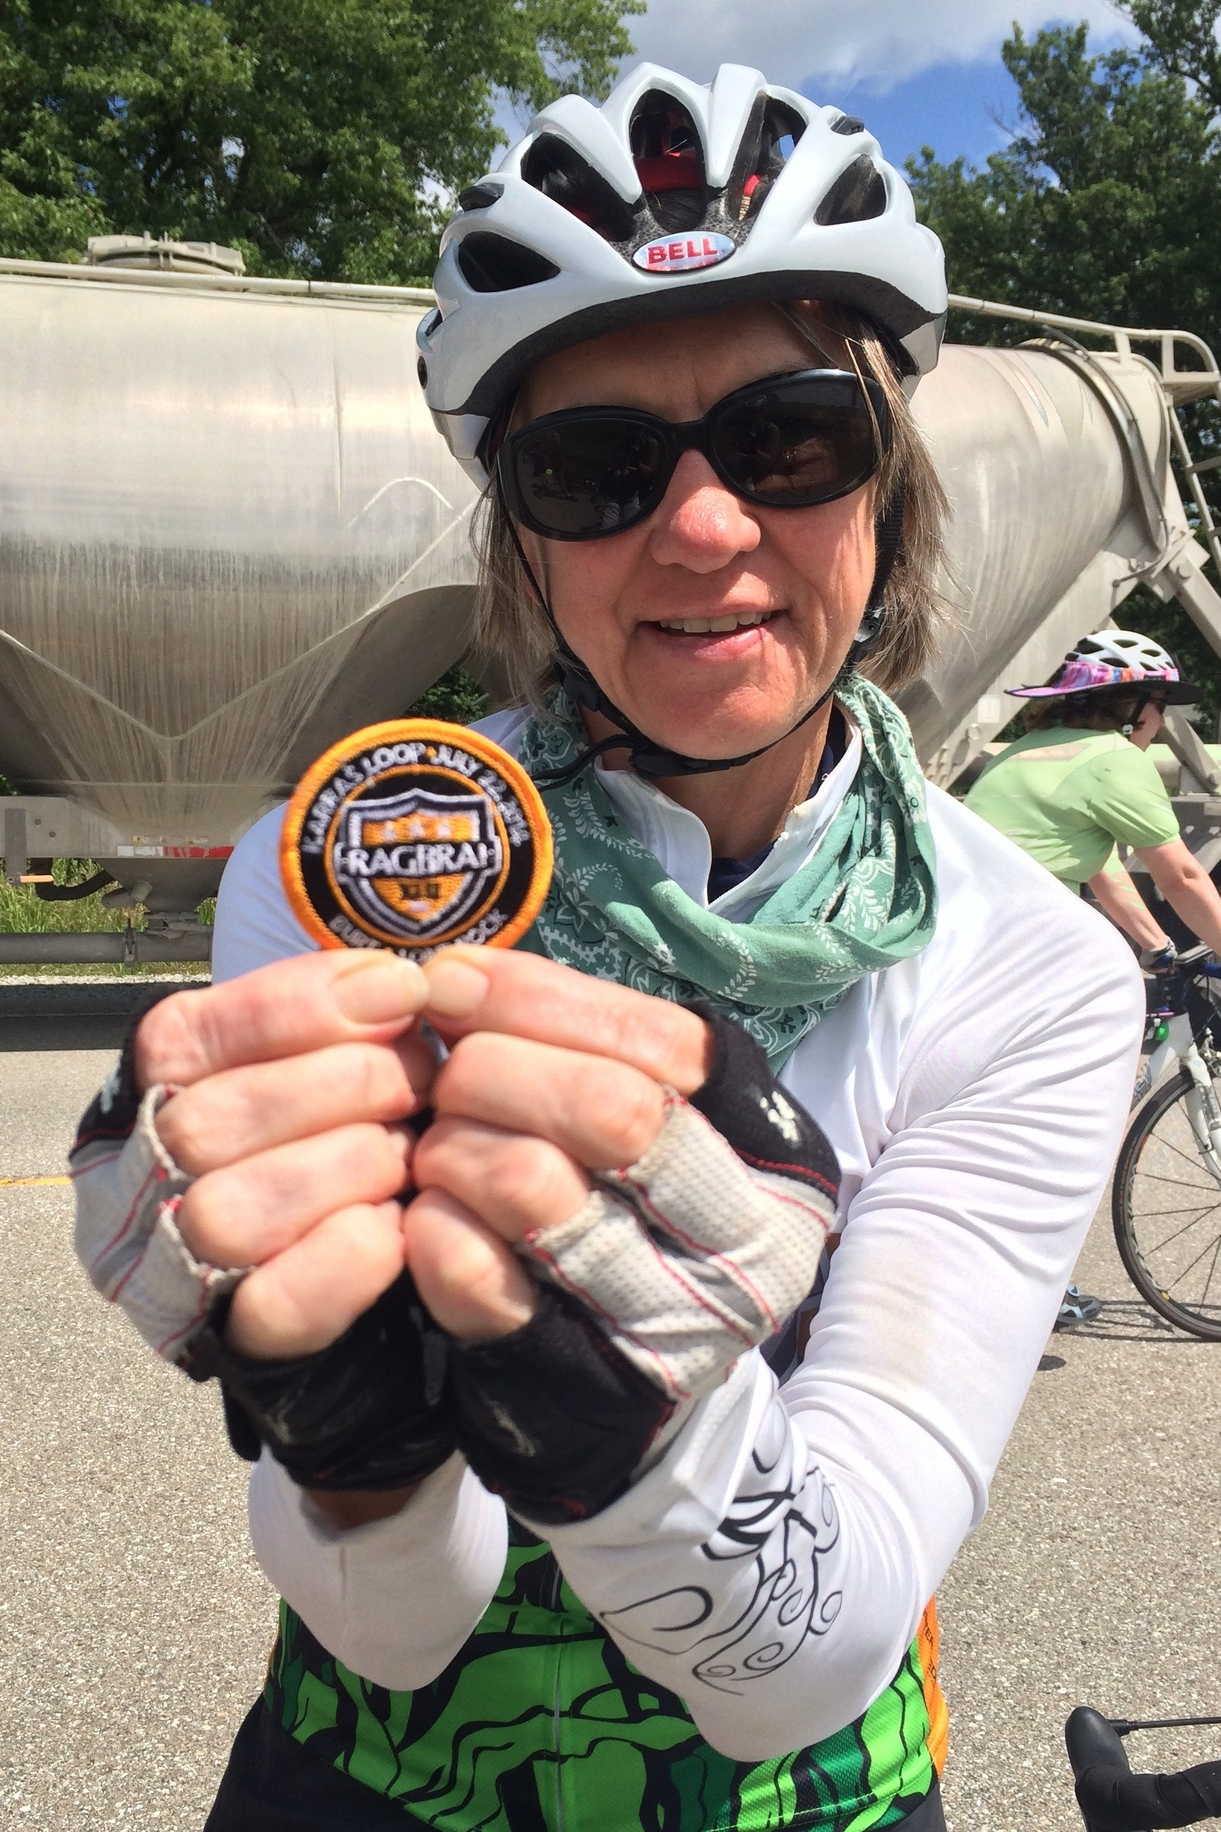 Tracy holding the patch given to riders who complete the Karras loop - over 100 miles in one day!